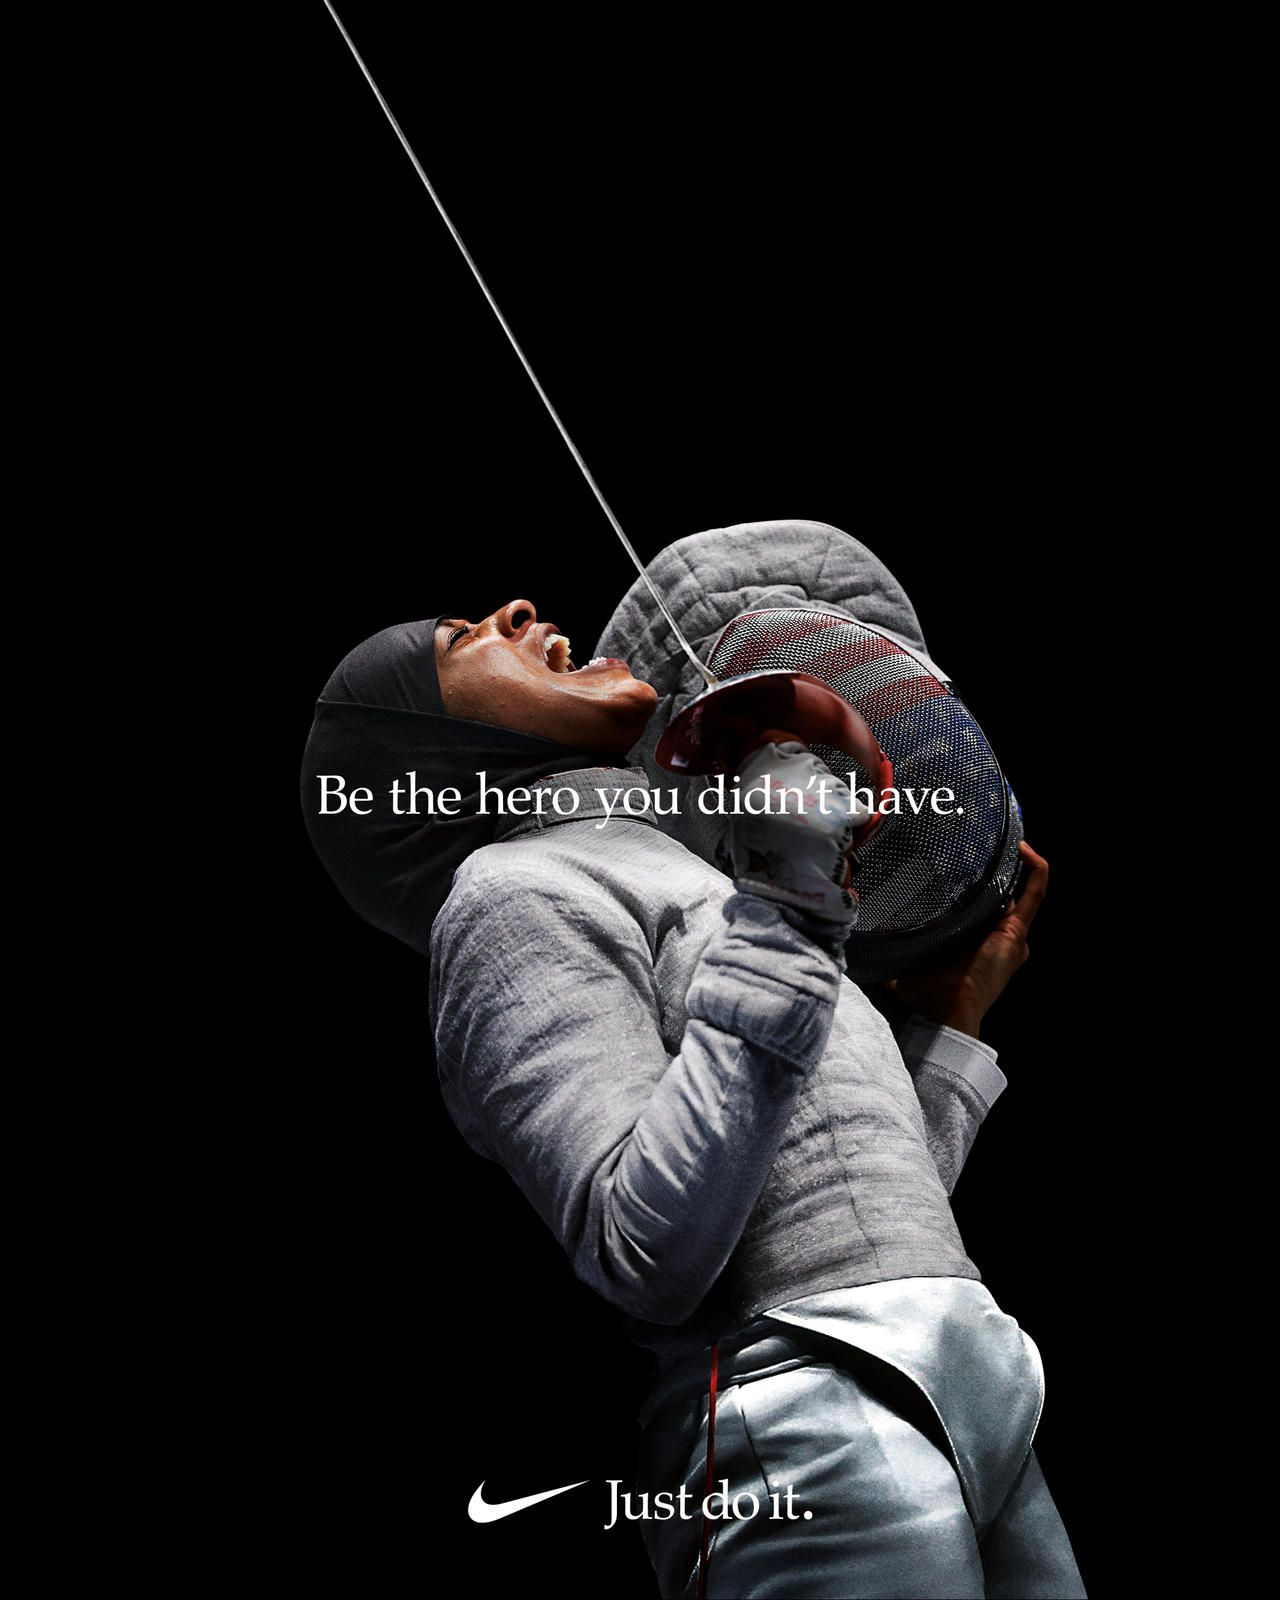 Nike S Incredible New Just Do It Campaign Gives Women The Spotlight Sbnation Com